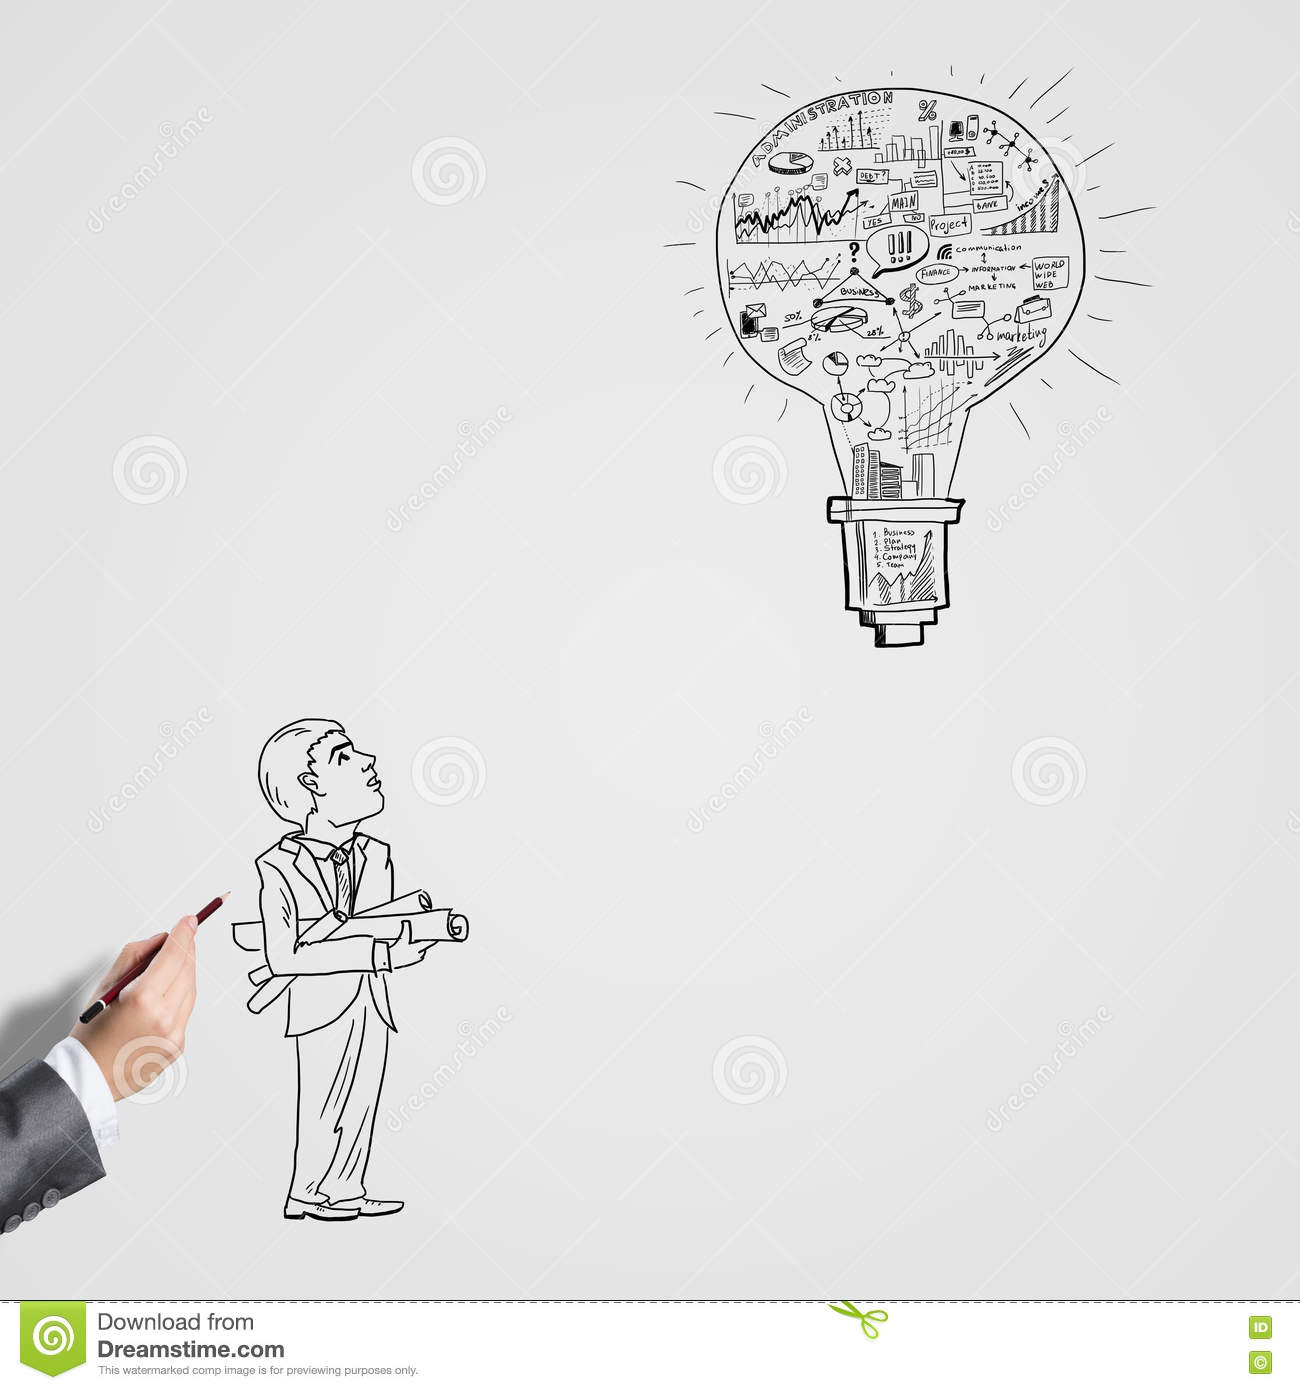 Sketching idea for success stock illustration